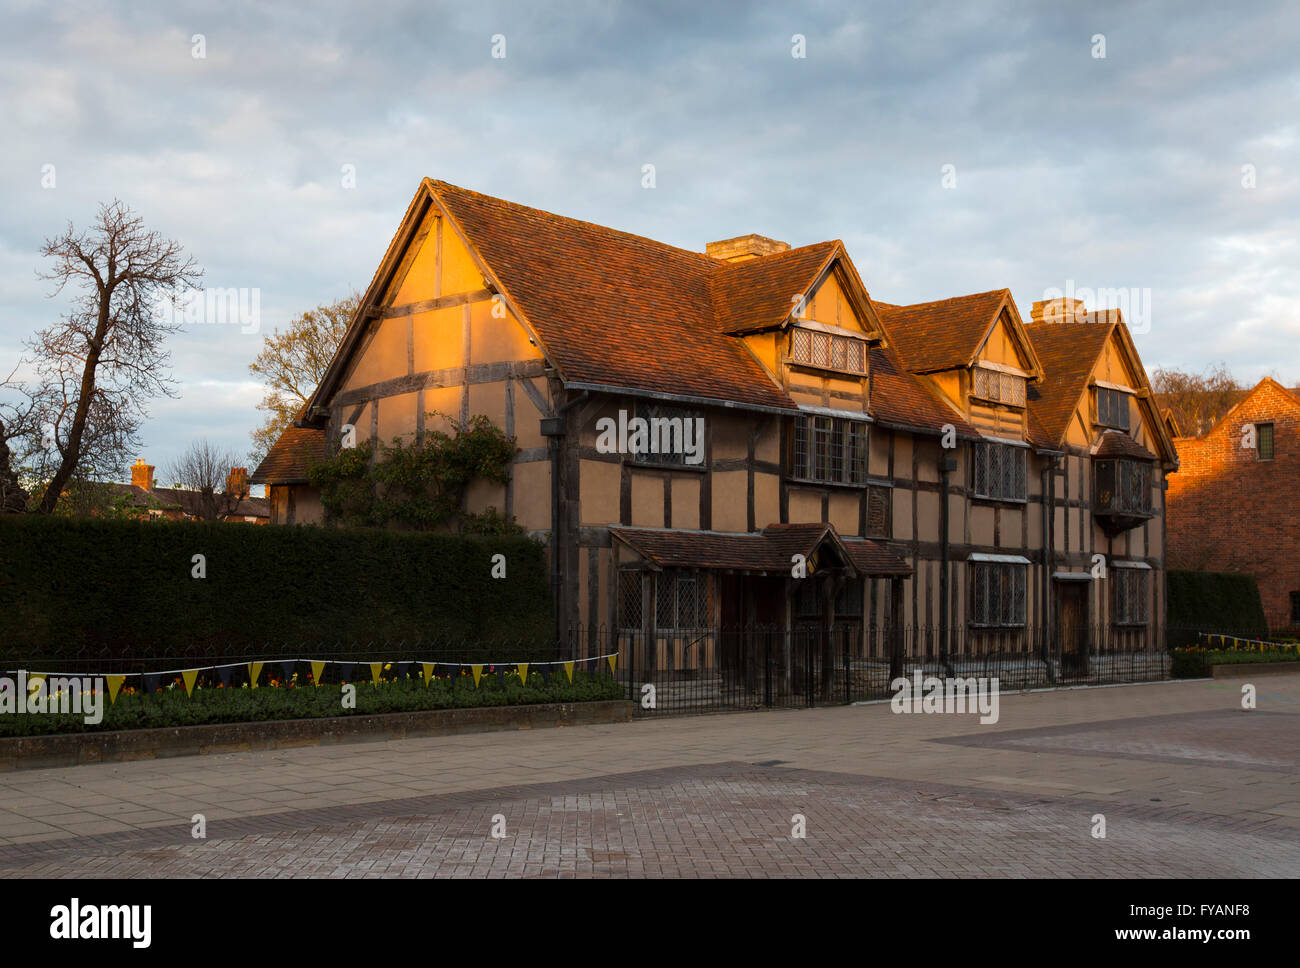 Shakespeare's birthplace caught by the setting sun in Stratford-upon-Avon, UK, on the day of the 400th anniversary - Stock Image